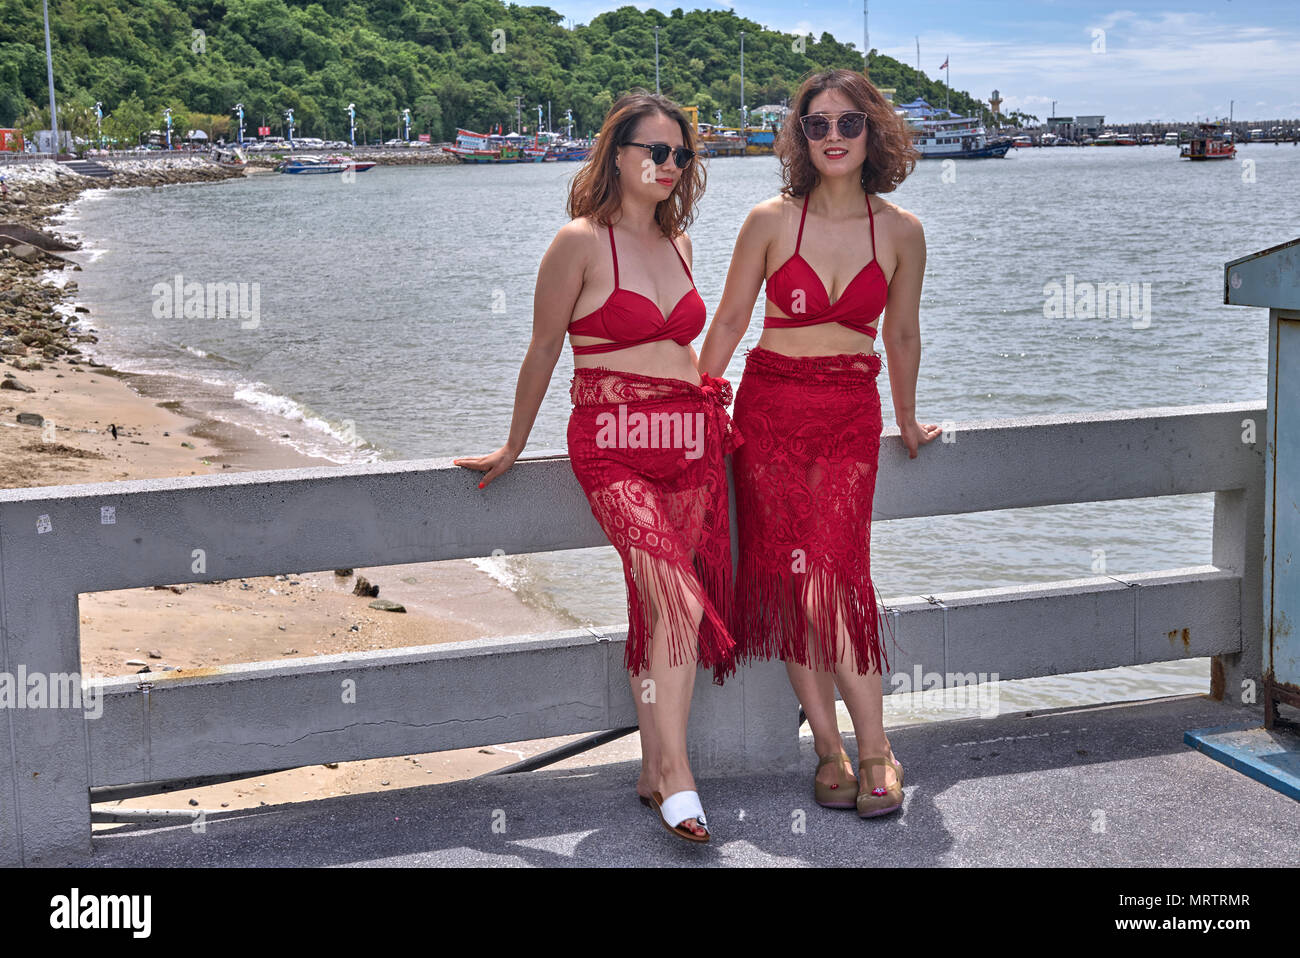 Two women dressed alike in red dresses. Thailand Southeast Asia - Stock Image